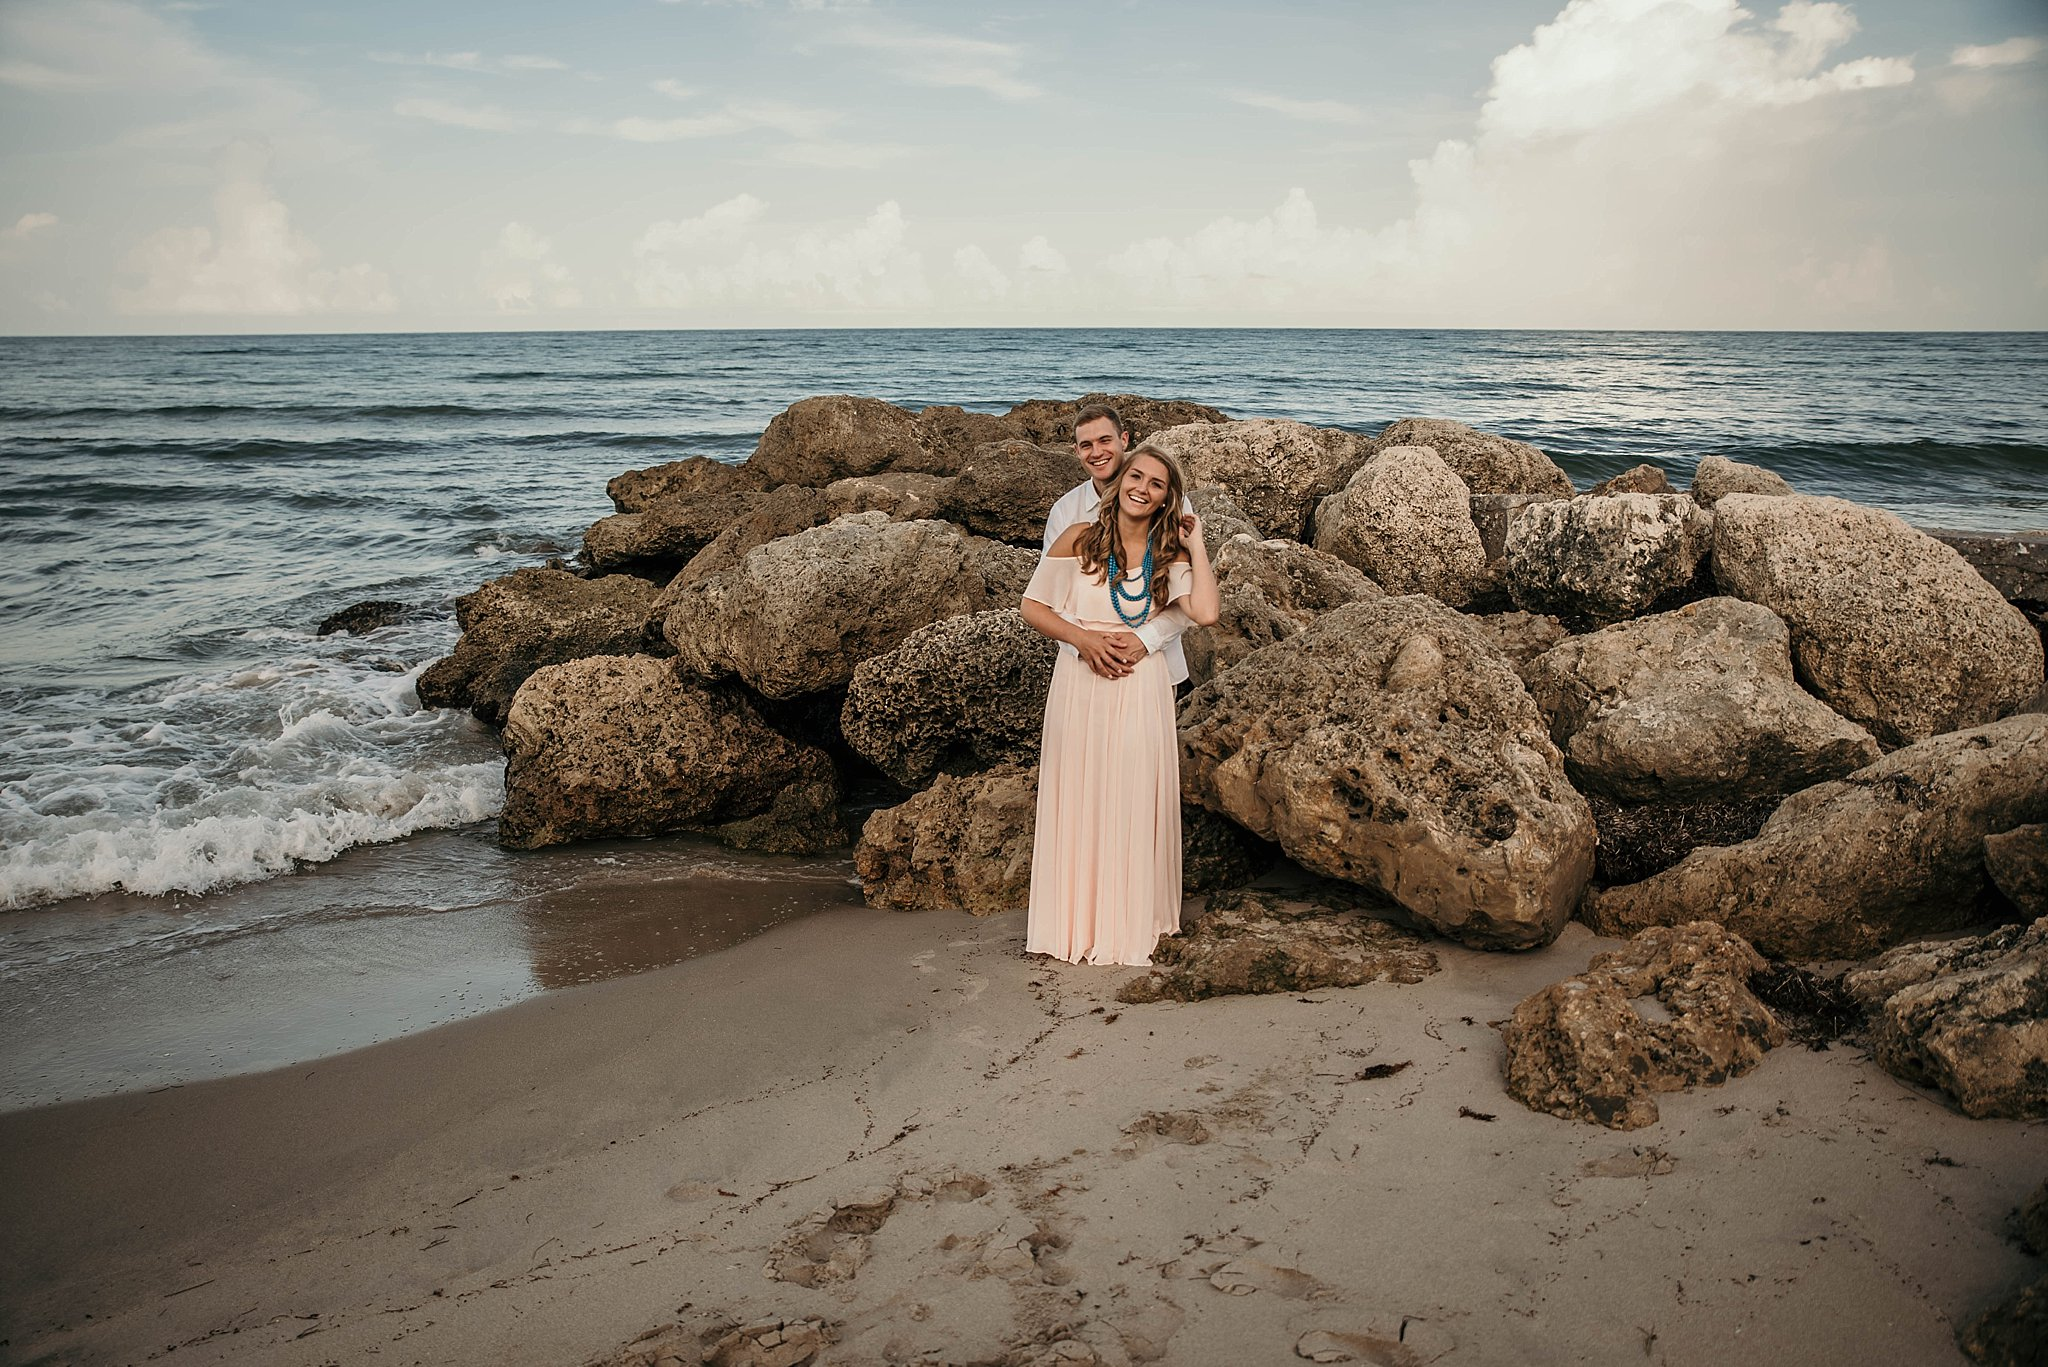 palm-beach-engagement-photos-florida-wedding-photographer_0010.jpg